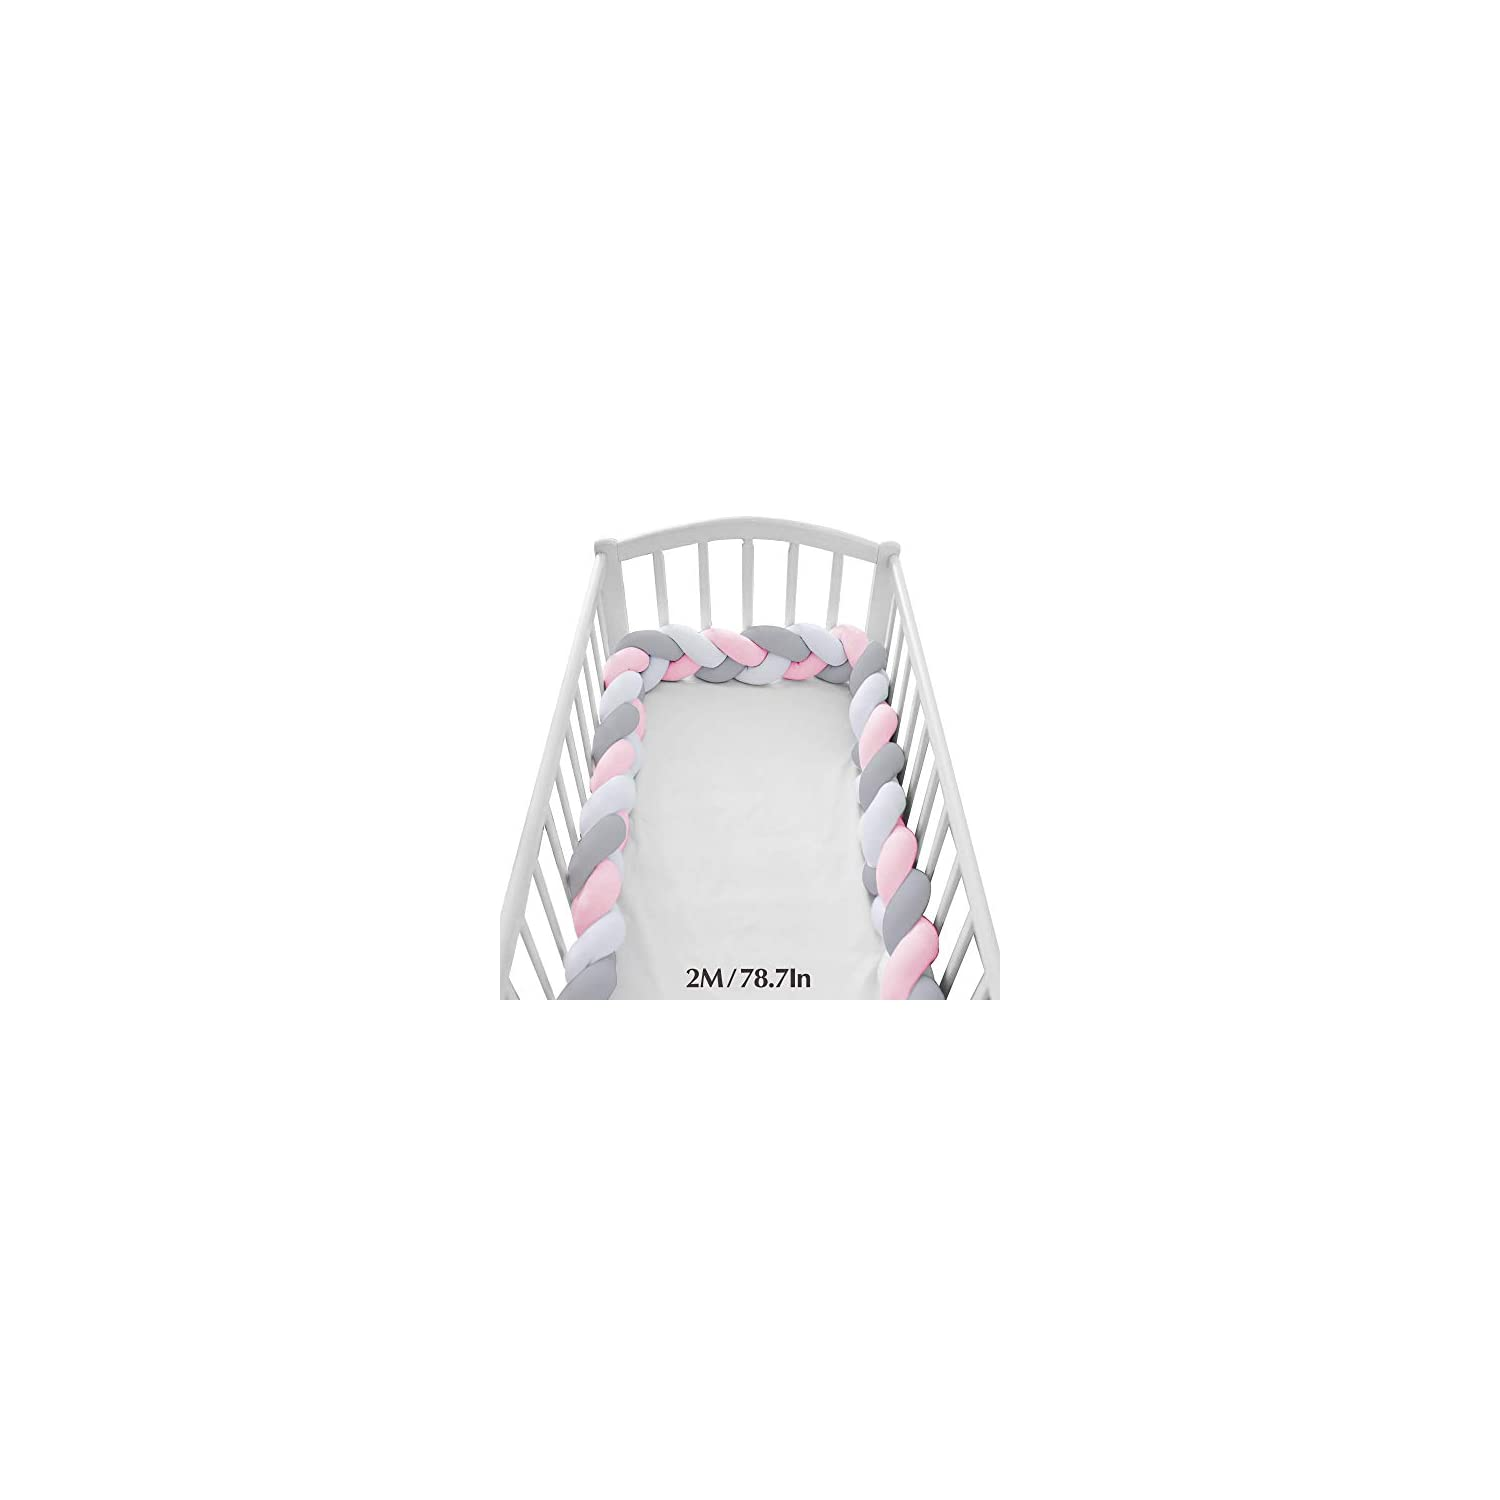 Wonder Space Soft Knot Plush Pillow – Baby Crib Bumper, Fashion Nursery Cradle Decor for Baby Toddler and Childern (Pink/Grey/White, 78.7IN / 2M)